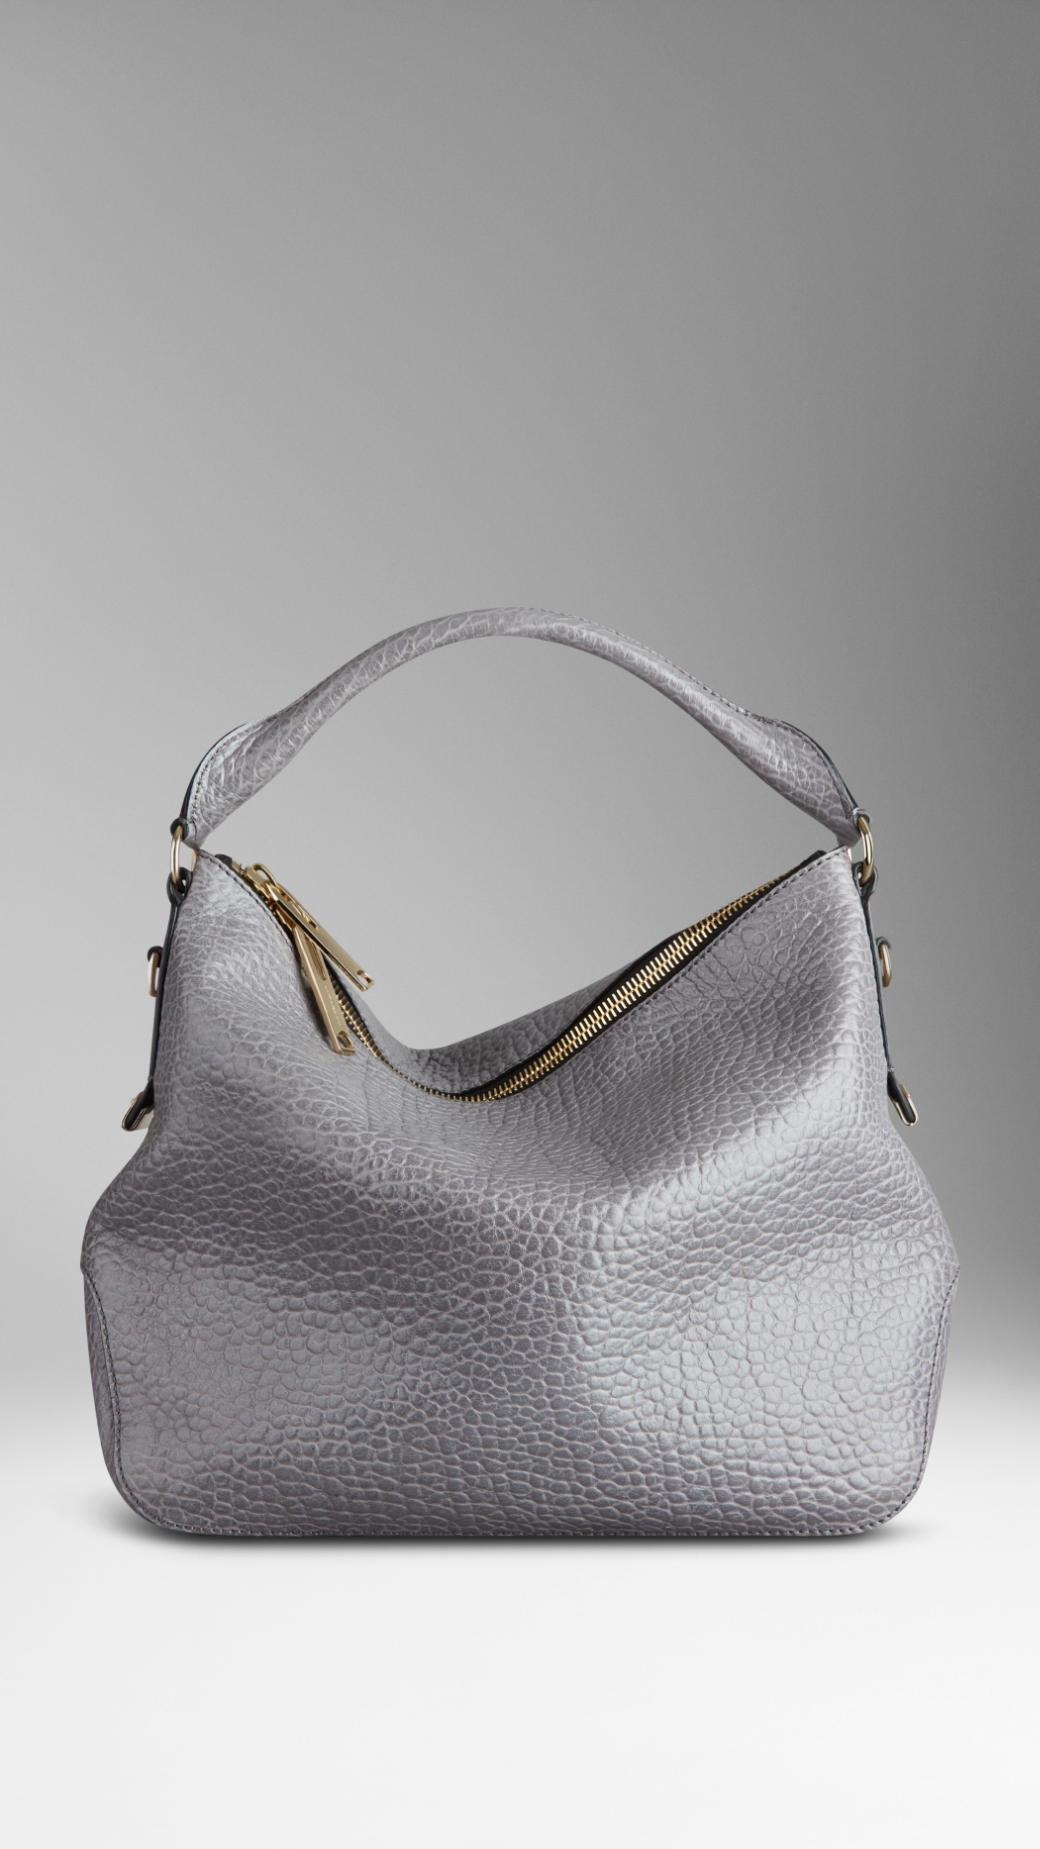 Burberry Small Heritage Grain Leather Hobo Bag in Gray | Lyst